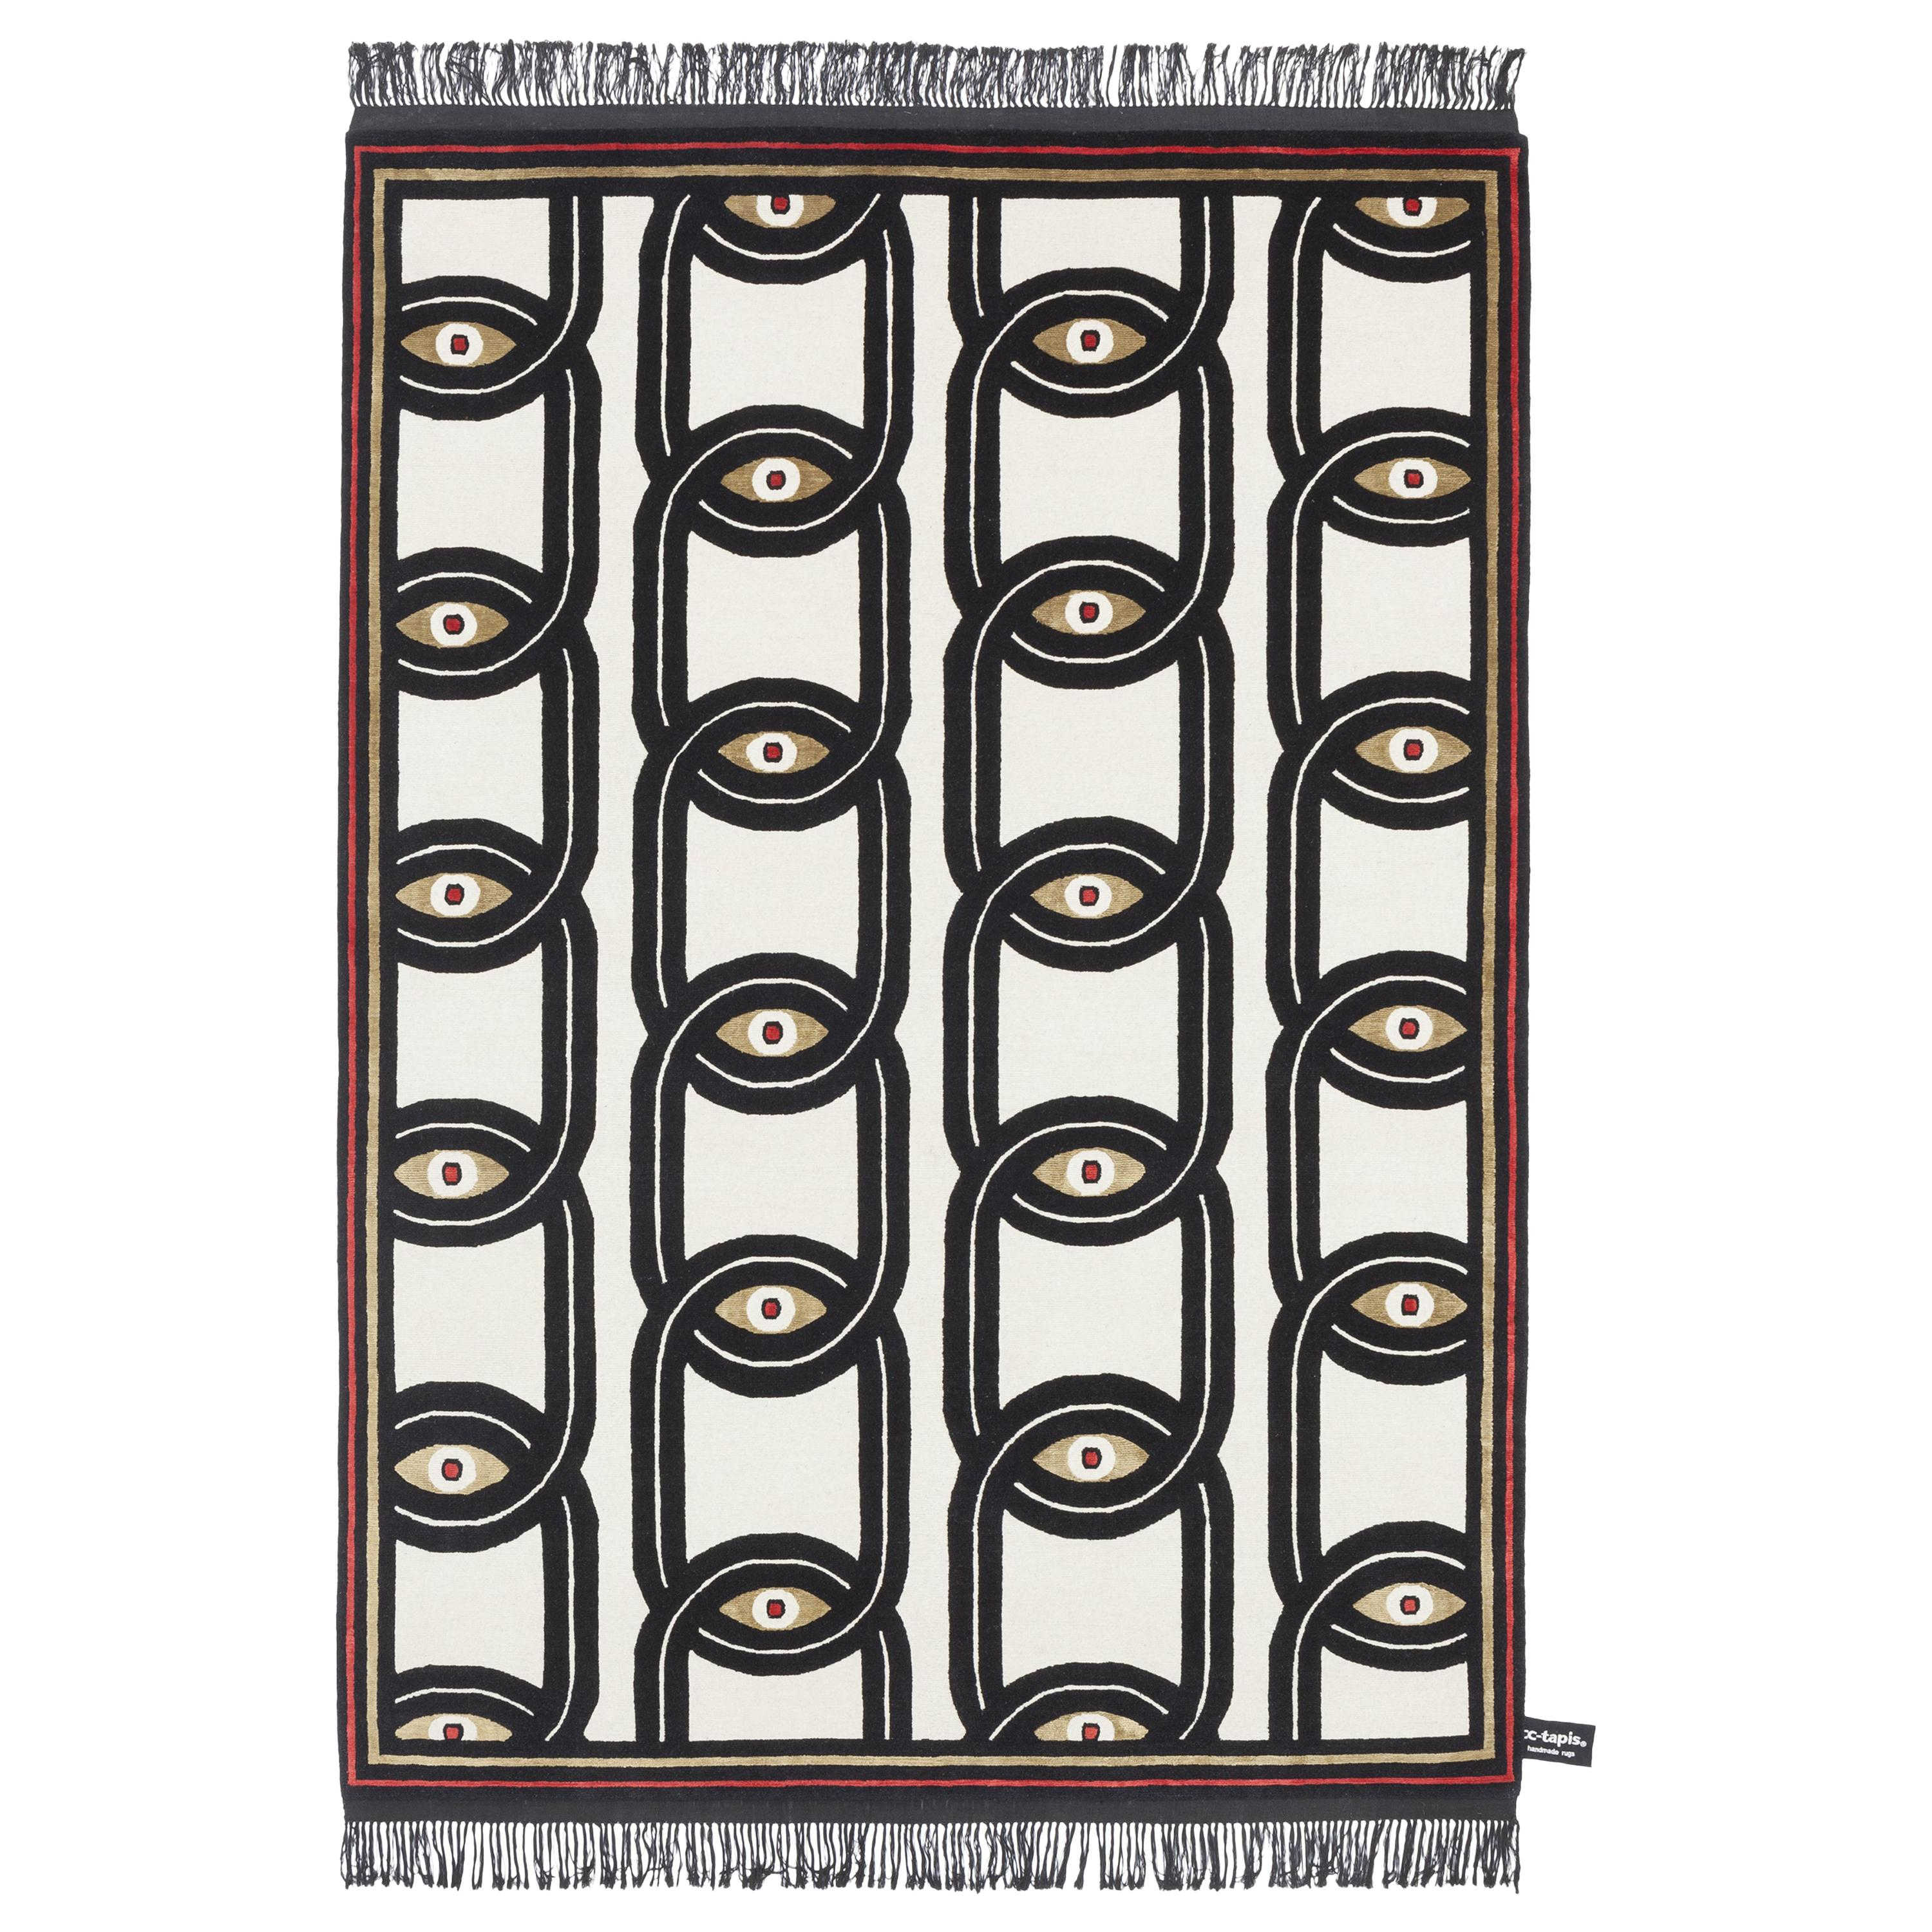 CC-Tapis Eyes in Chains Rug by Federico Pepe